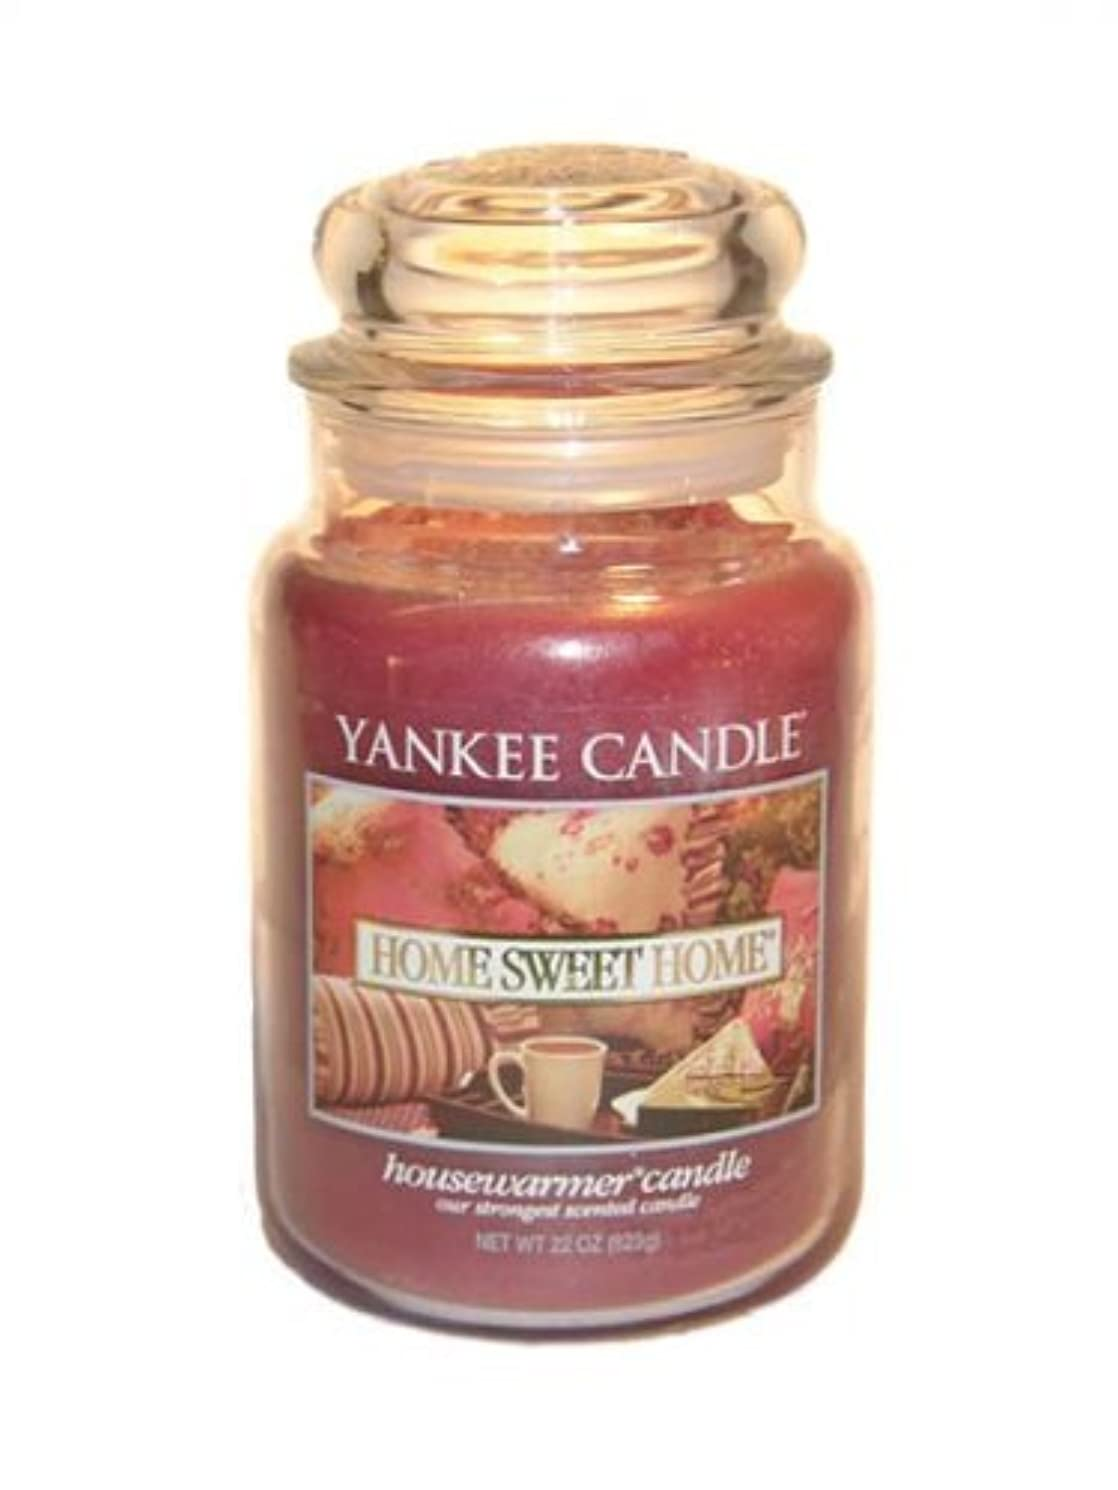 発動機活性化プラカードYankee Candle Home Sweet Home Large Jar 22oz Candle by Amazon source [並行輸入品]